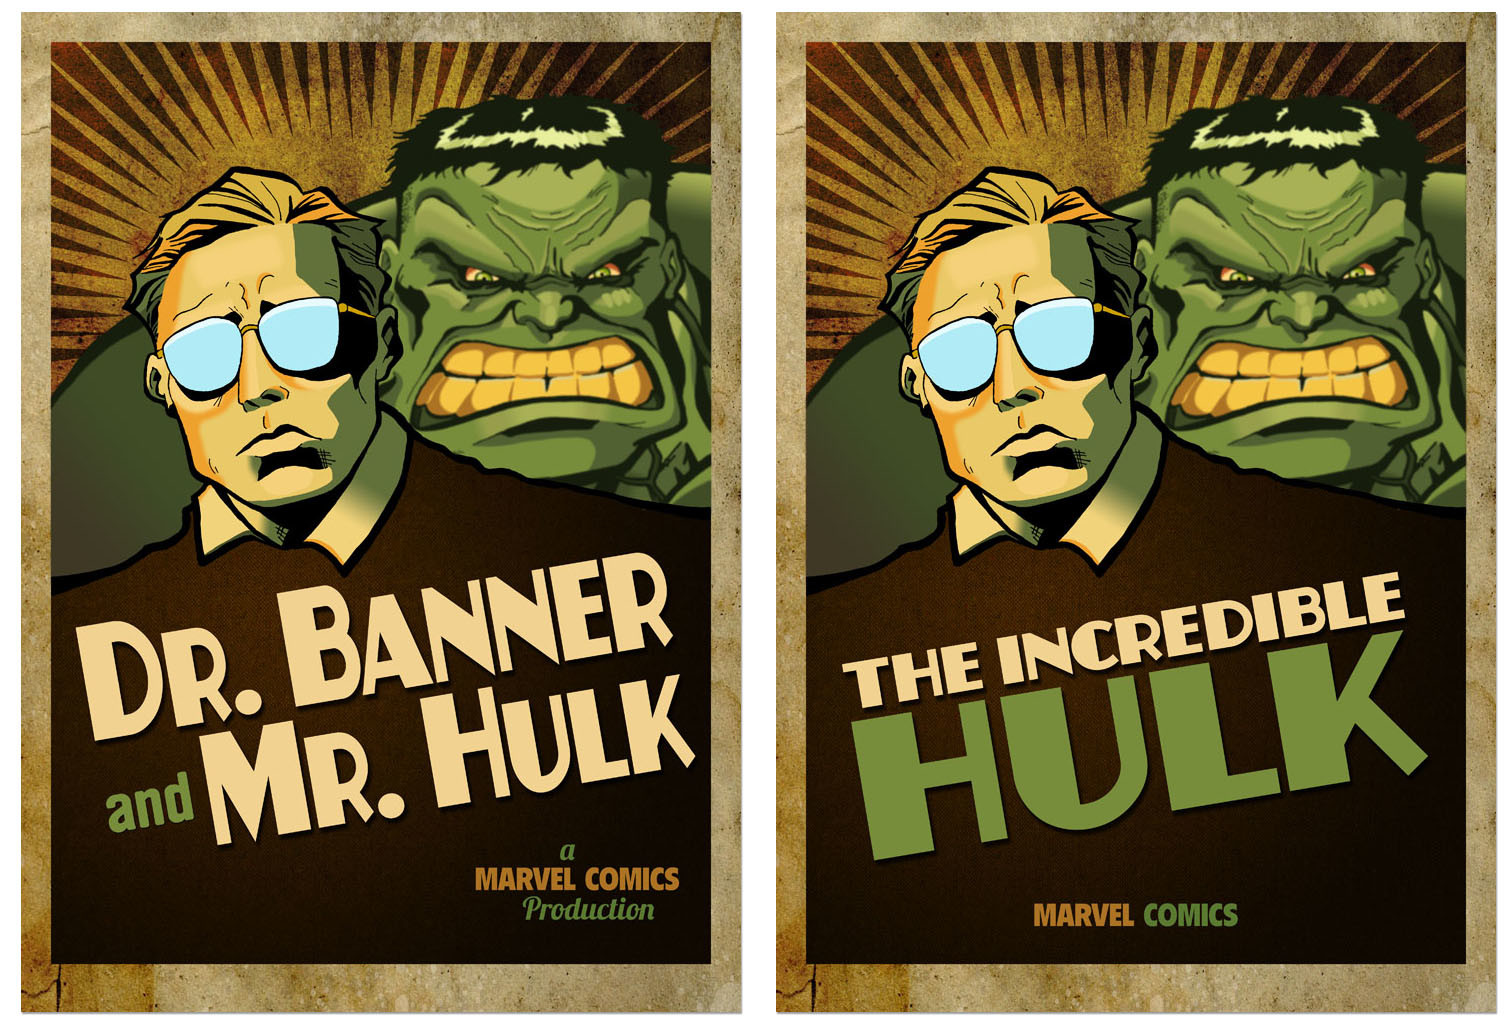 Dr. Banner and Mr. Hulk poster